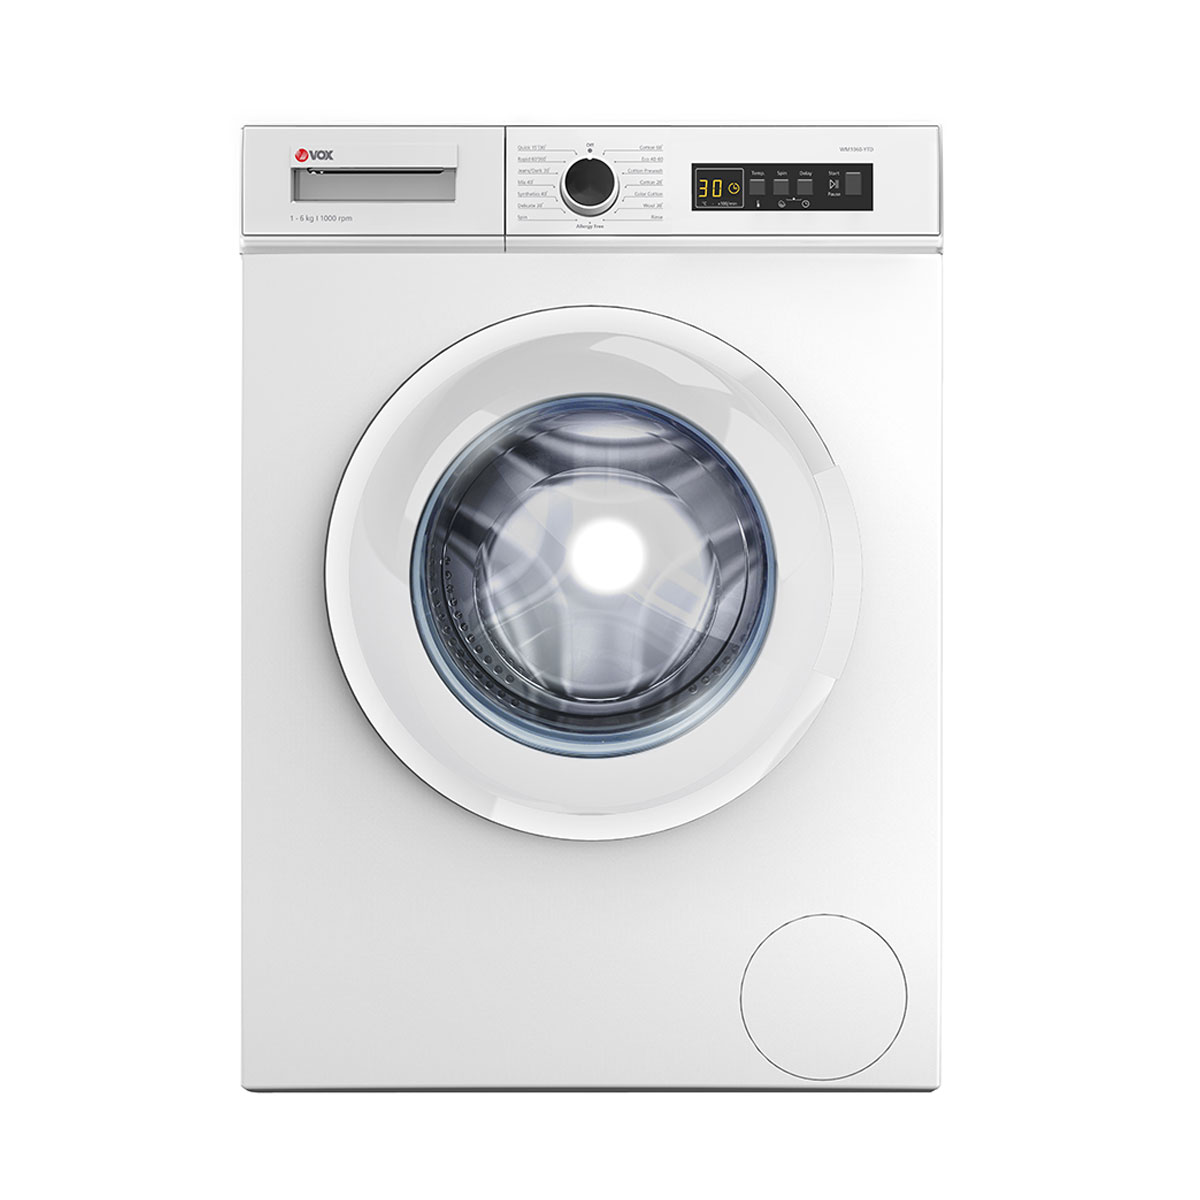 Washing machine WM1060-YTD